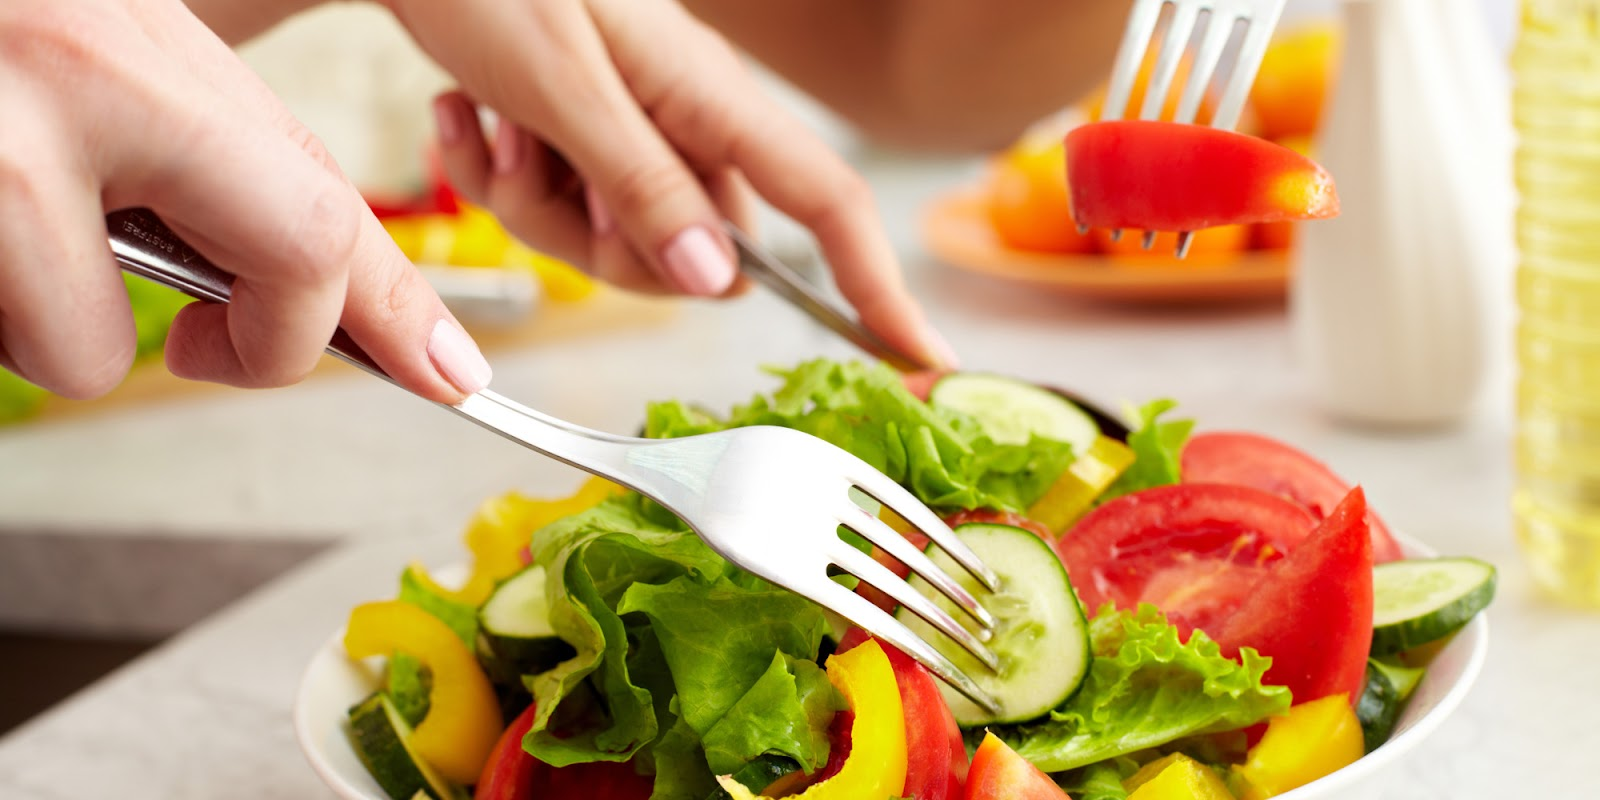 Fill_up_your_health_with_colorful_fruits_and_vegetables.jpg